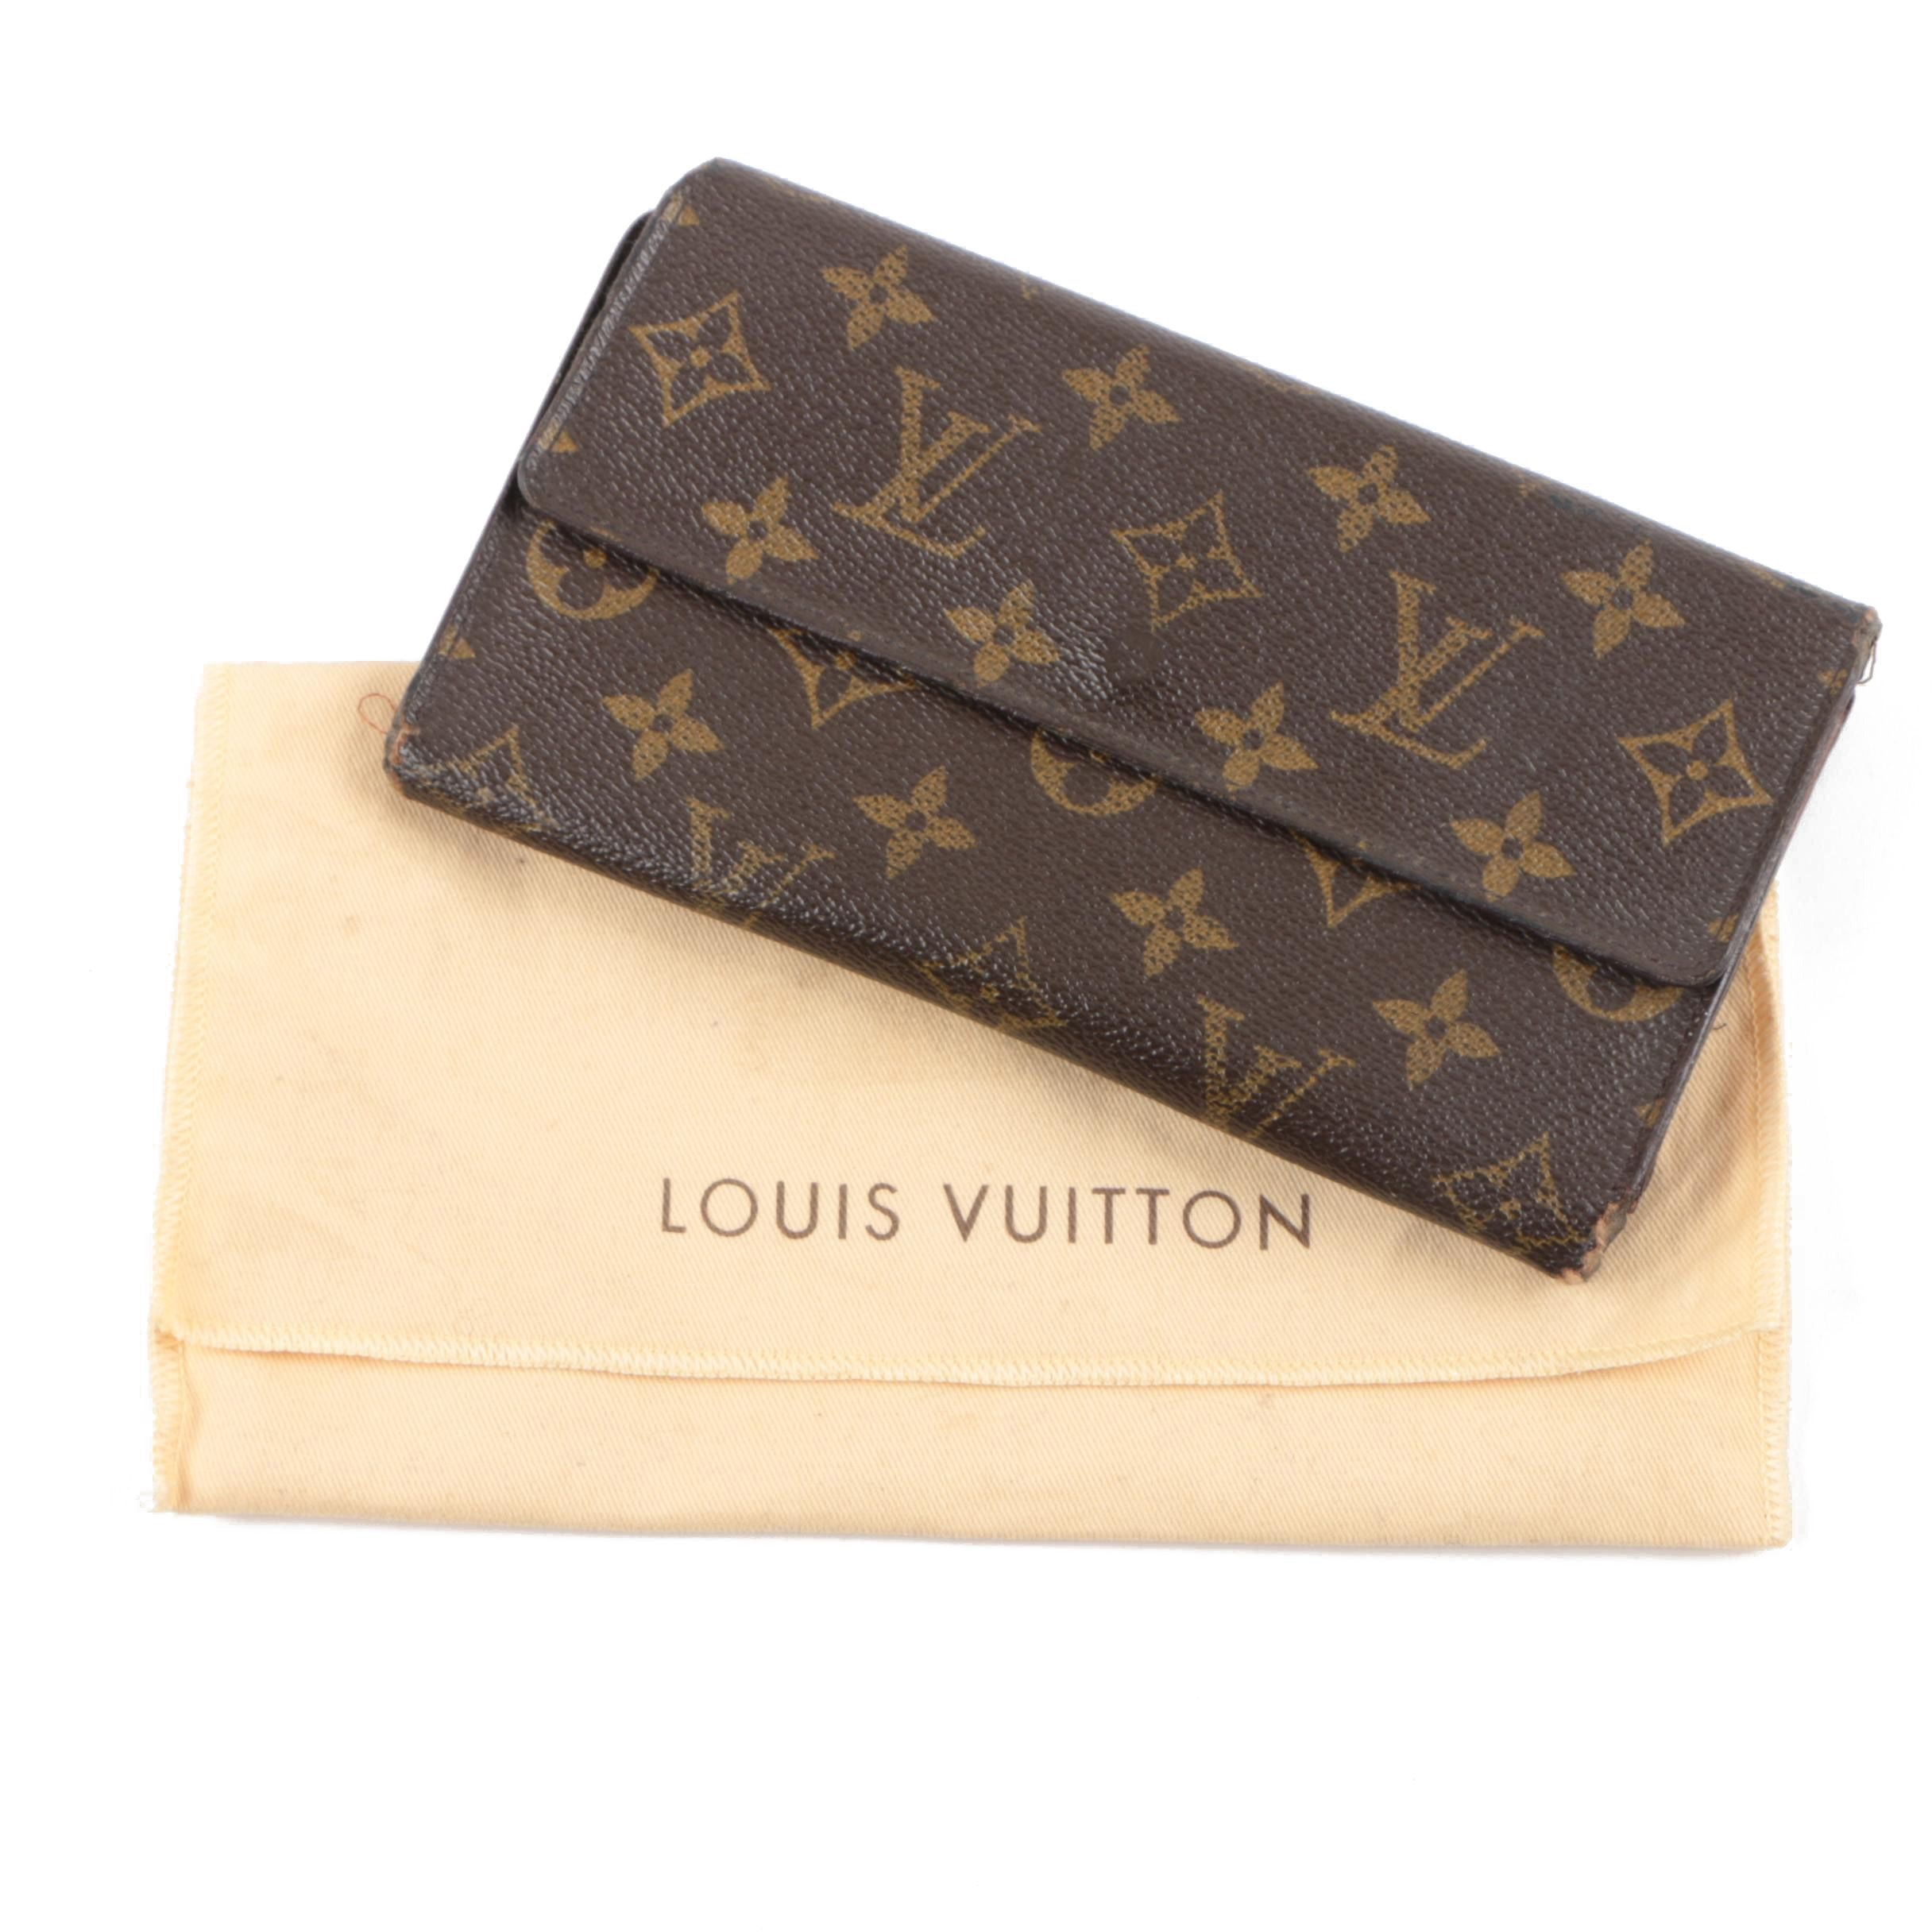 Vintage Louis Vuitton of Paris Monogram Canvas Wallet